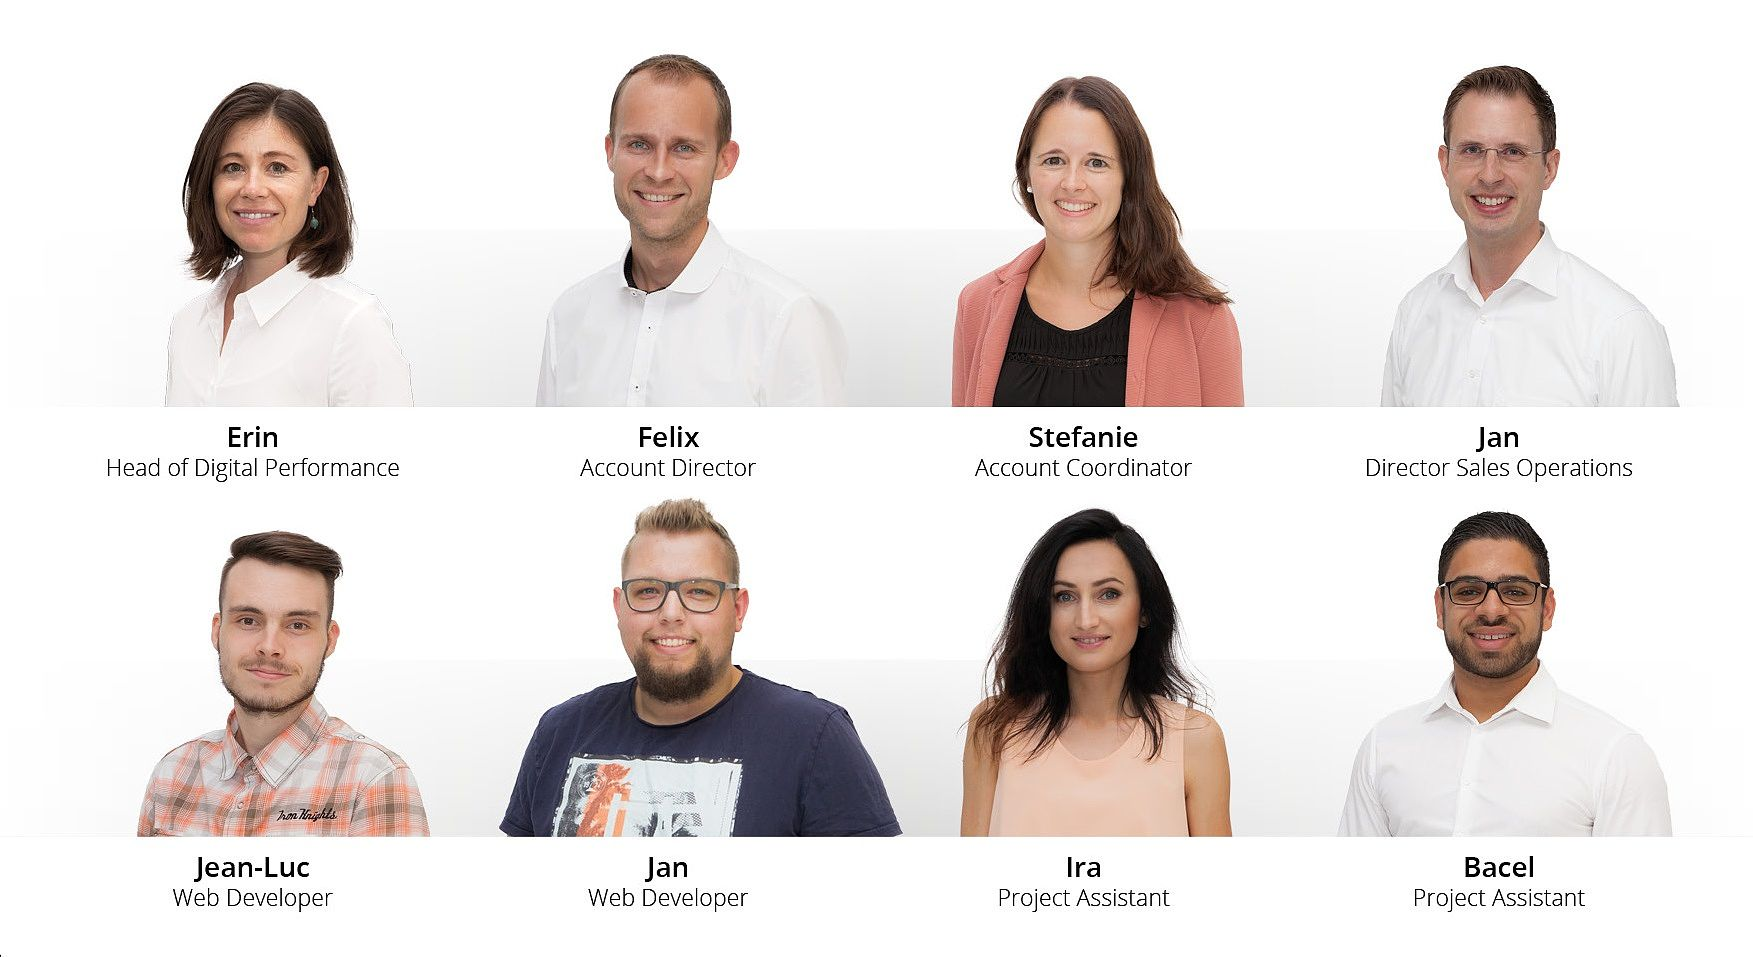 Unsere neuen Mitglieder im Modix-Team. Erina als Head of Digital Performance, Felix als Account Director, Stefanie als Account Coordinator, Jan als Director Sales Operations, Jean-Luc und Jan als Webdeveloper, Ira und Bacel als Project Assistant.